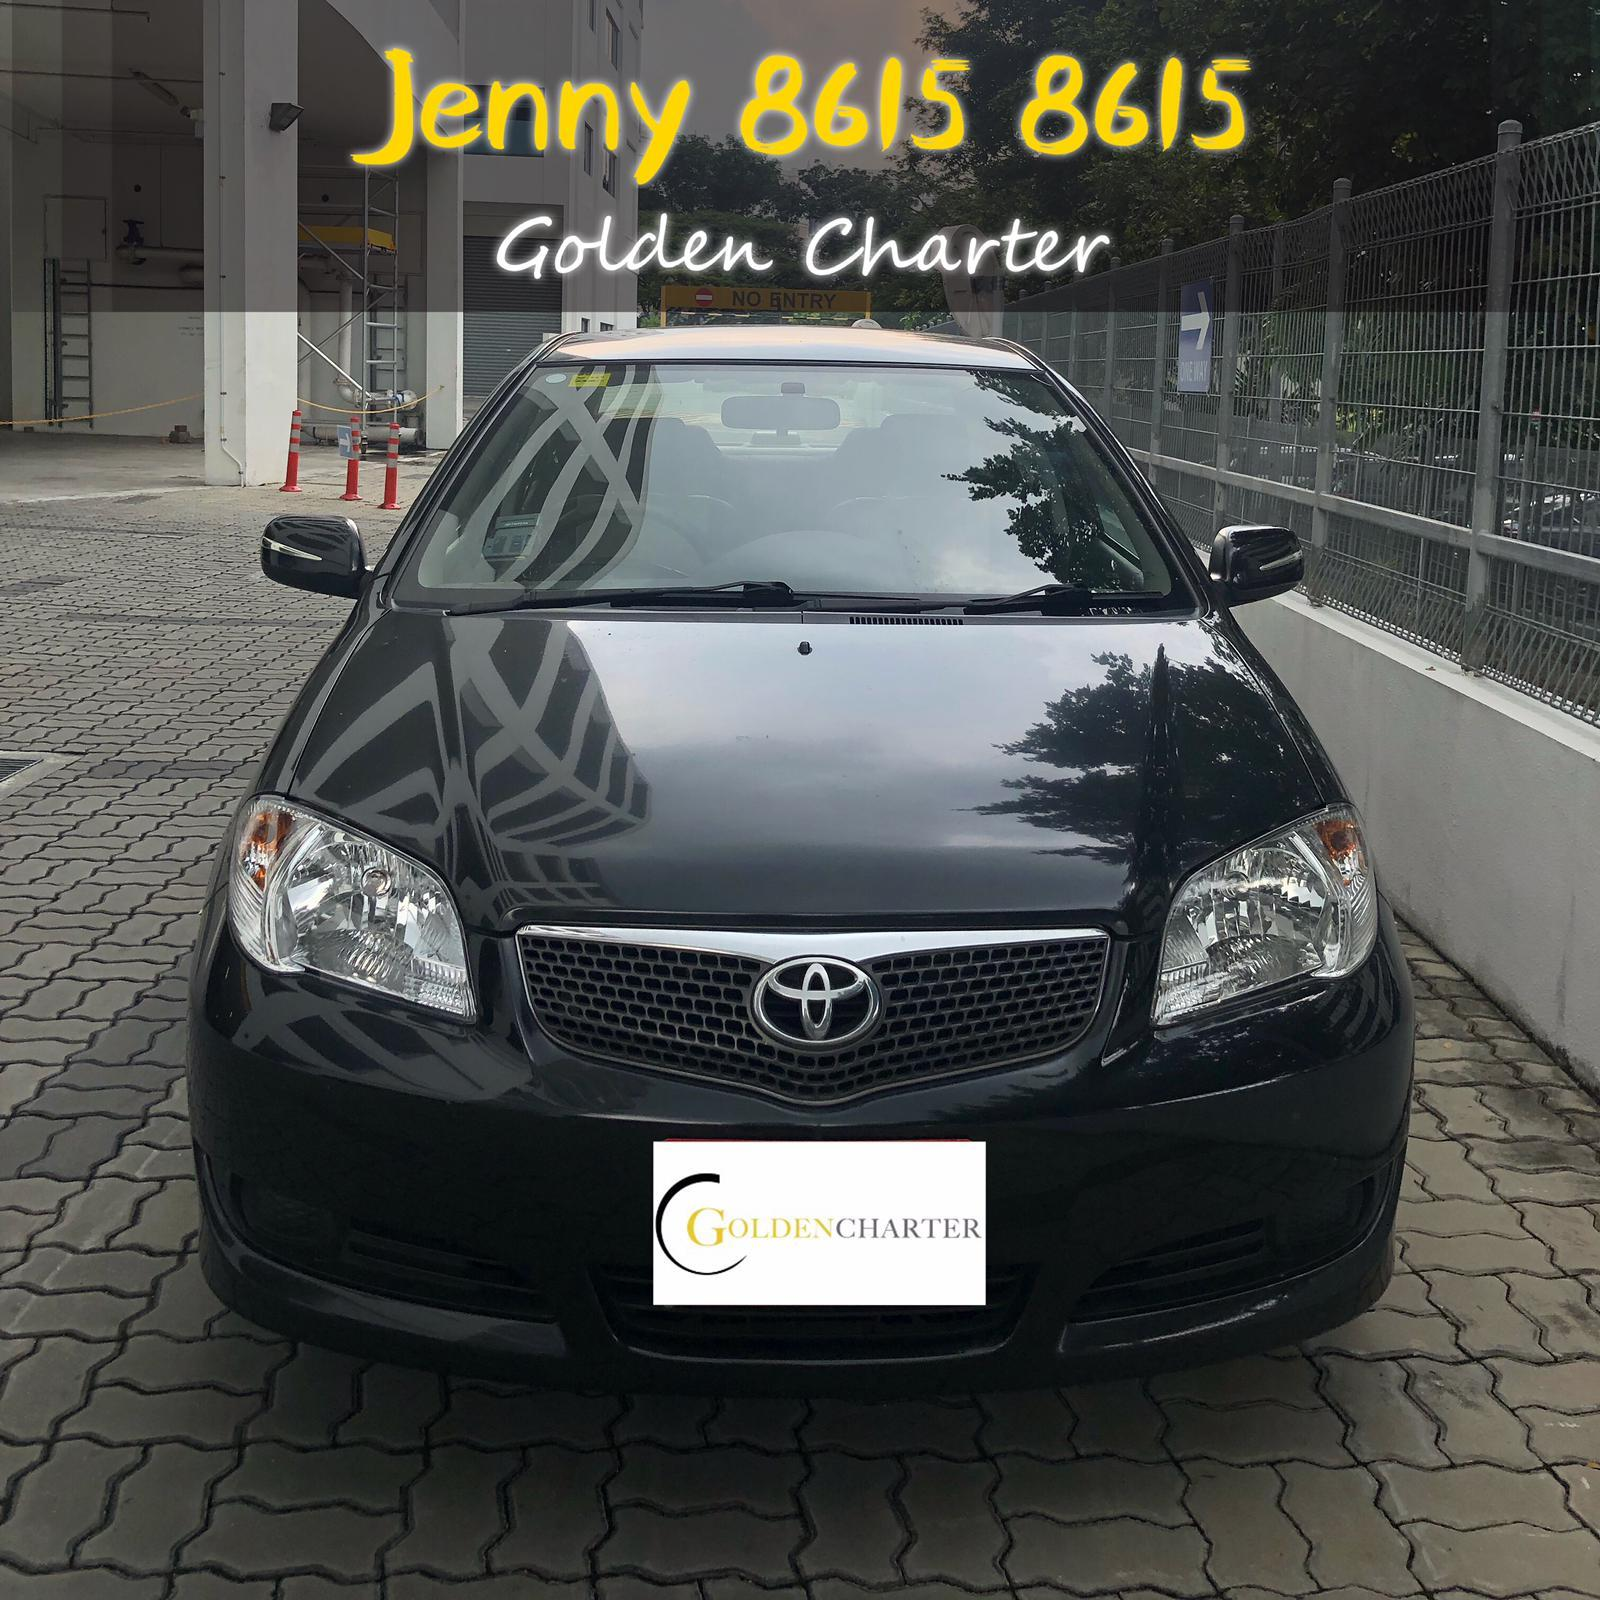 TOYOTA VIOS 50$ Toyota Vios Wish Altis Car Axio Premio Allion Camry Estima Honda Jazz Fit Stream Civic Cars Hyundai Avante Mazda 3 2 For Rent Lease To Own Grab Rental Gojek Or Personal Use Low price and Cheap